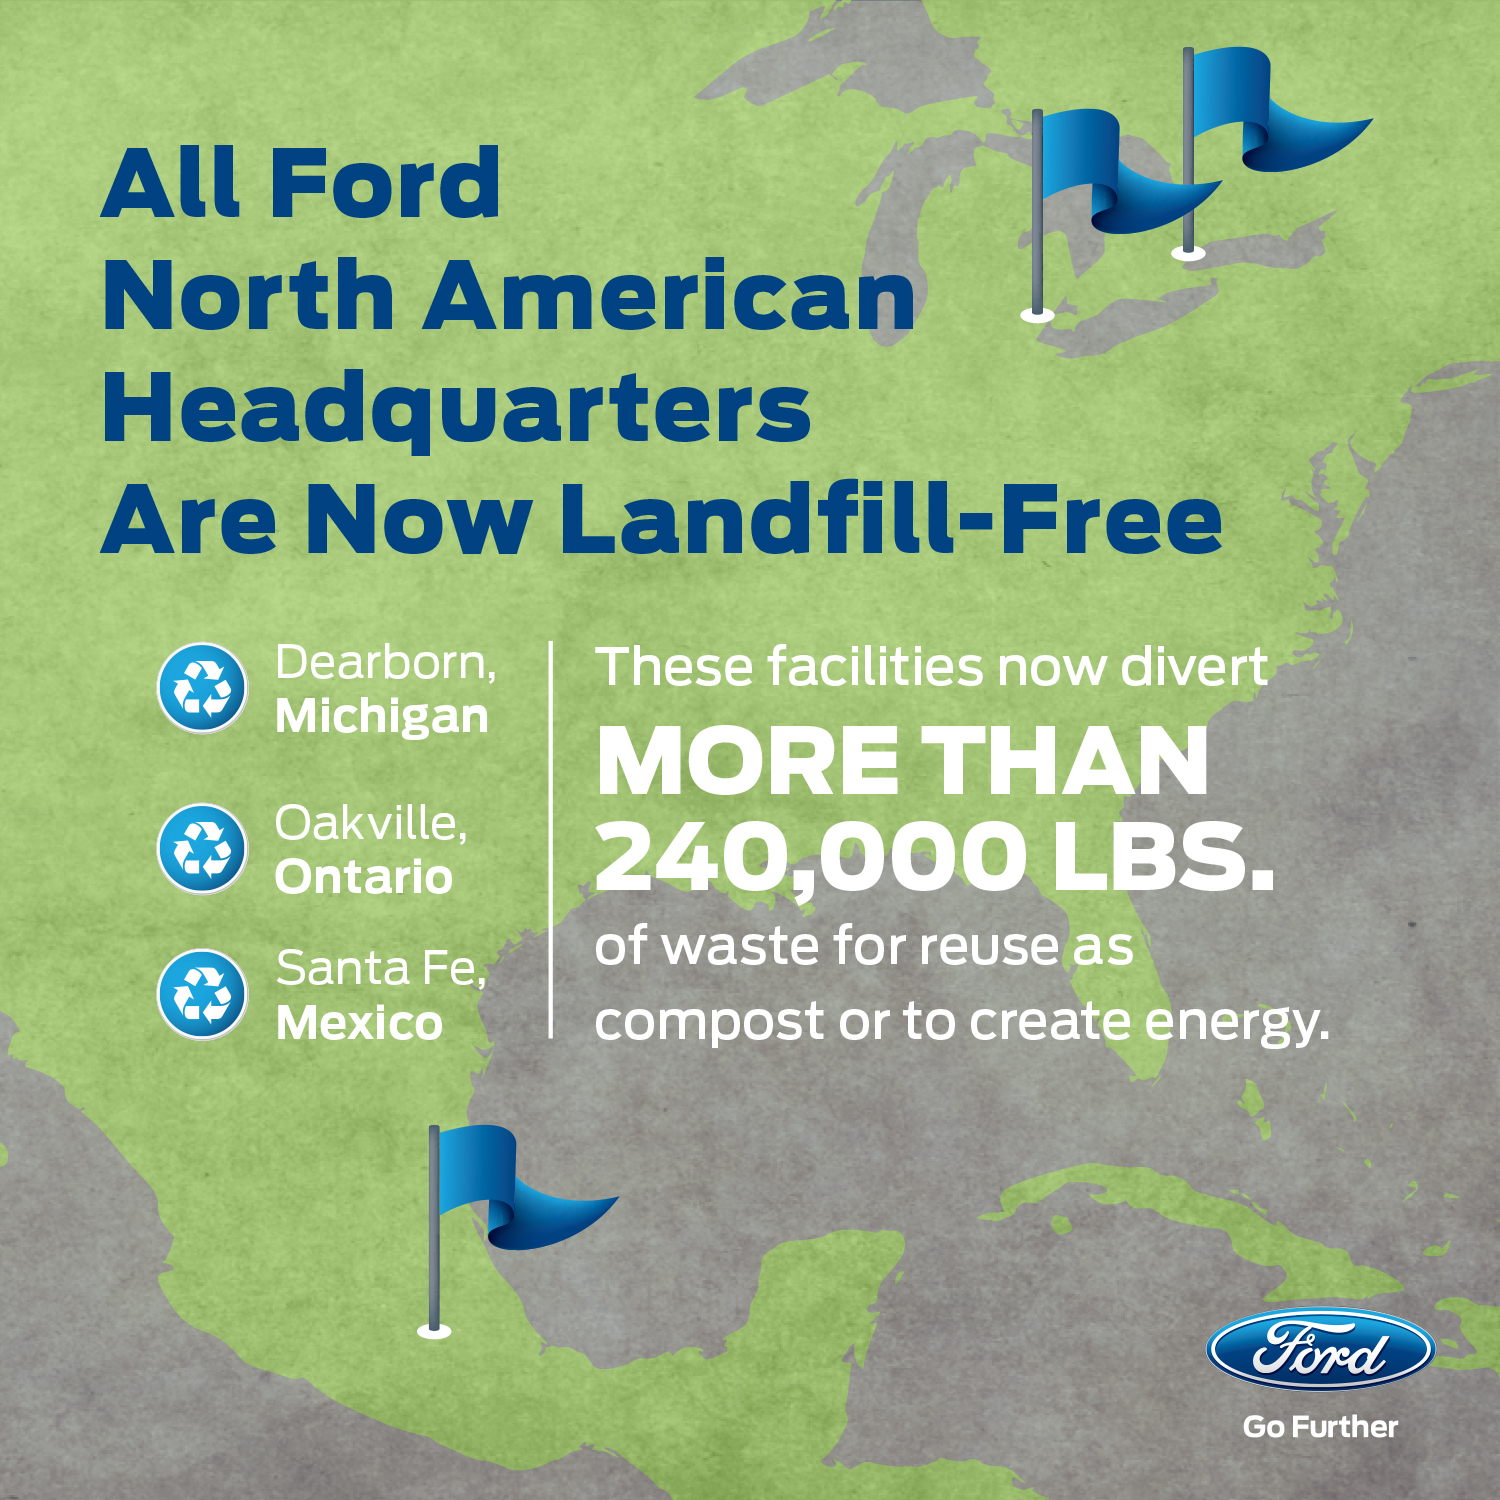 North American Headquarter Of Ford Achieved Zero Waste To Landfill